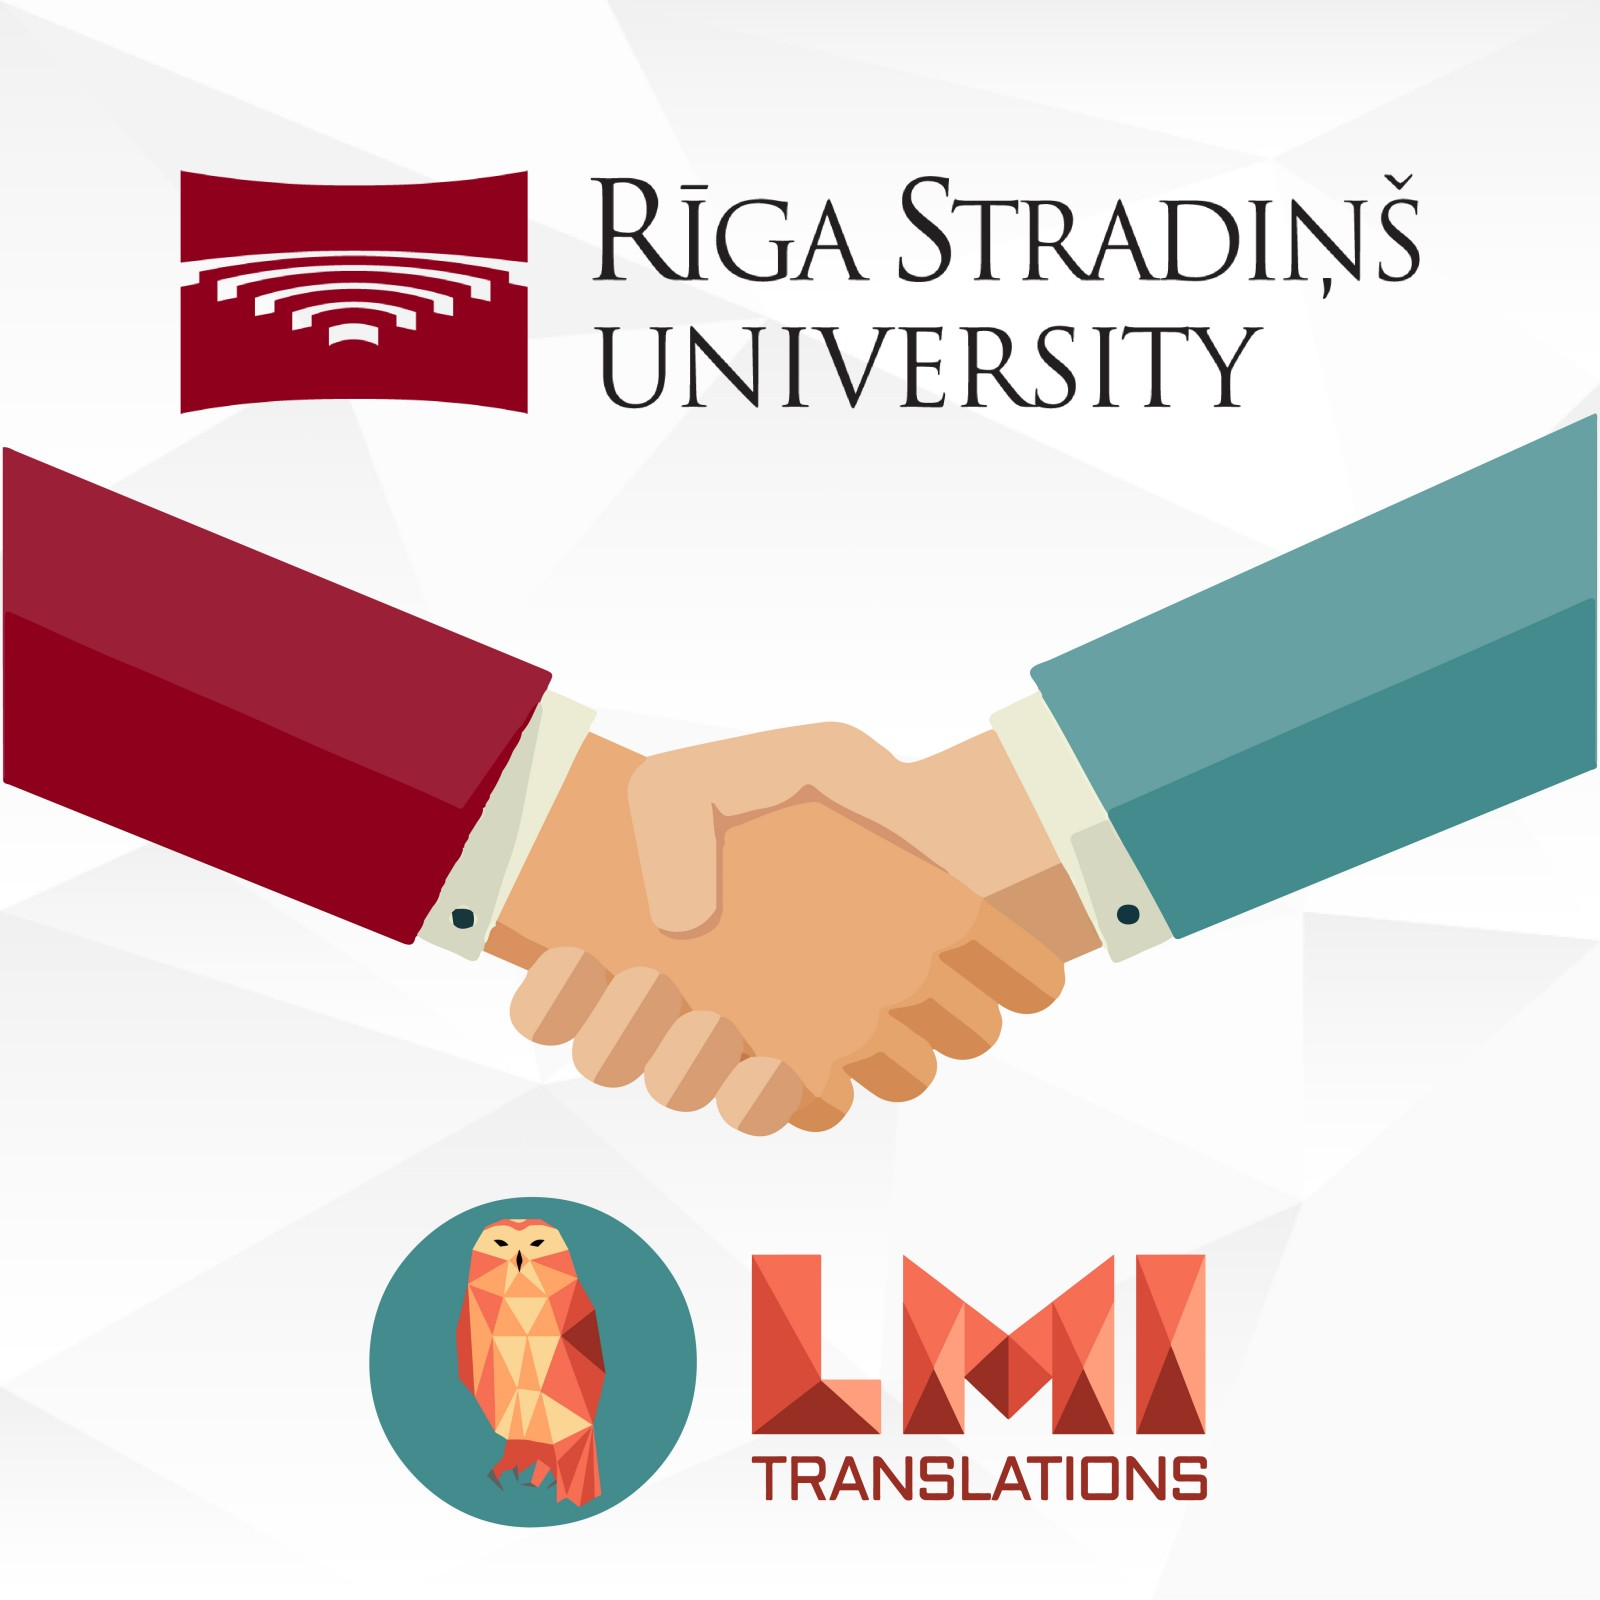 IN 2020, LMI TRANSLATIONS WAS AWARDED A CONTRACT WITH RĪGA STRADIŅŠ UNIVERSITY FOR THE PROVISION OF TRANSLATION SERVICES